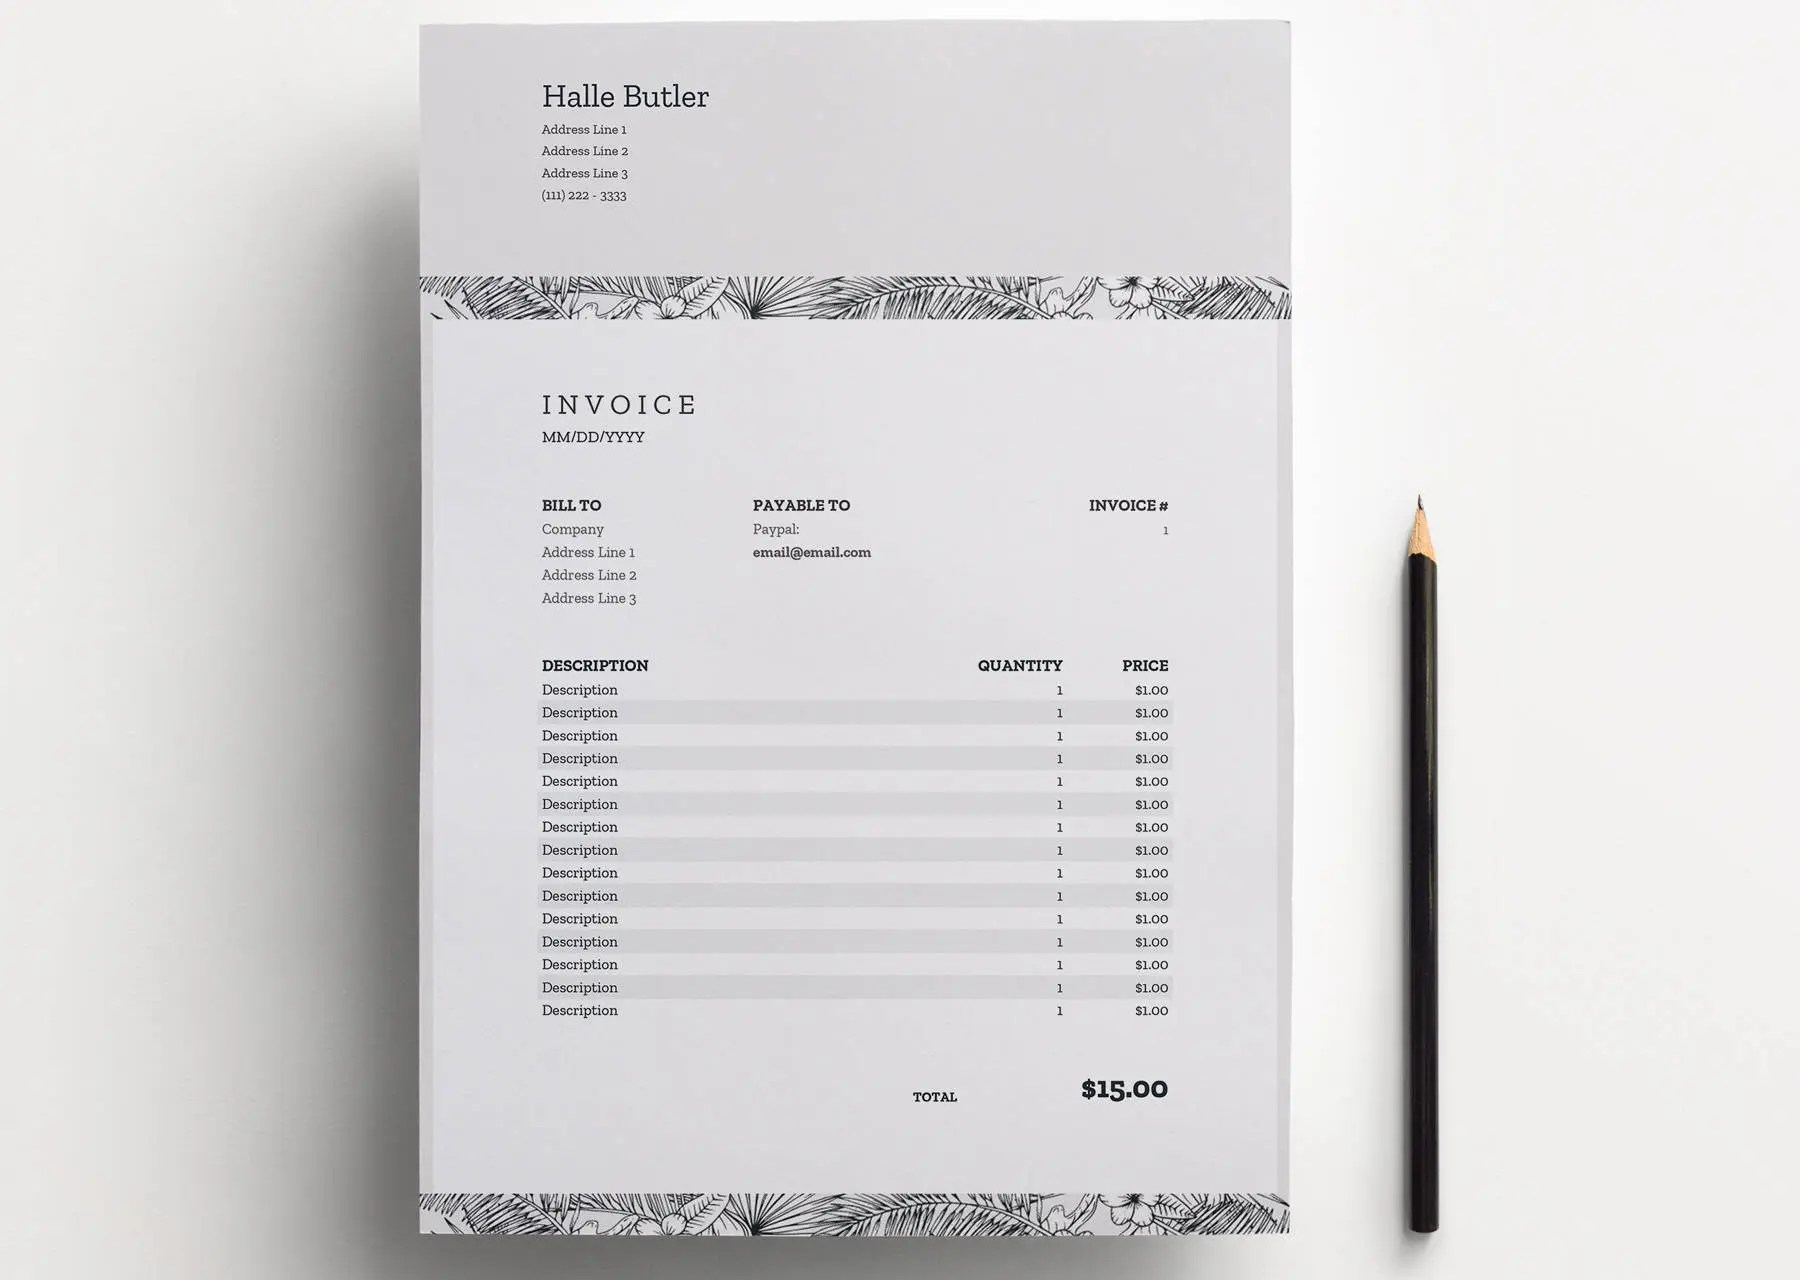 Excel invoice   Etsy Invoice   Excel   Google Sheets  Receipt Template  Invoice Design  Billing  Template  Instant Download Clean Invoice Spreadsheet  Printable